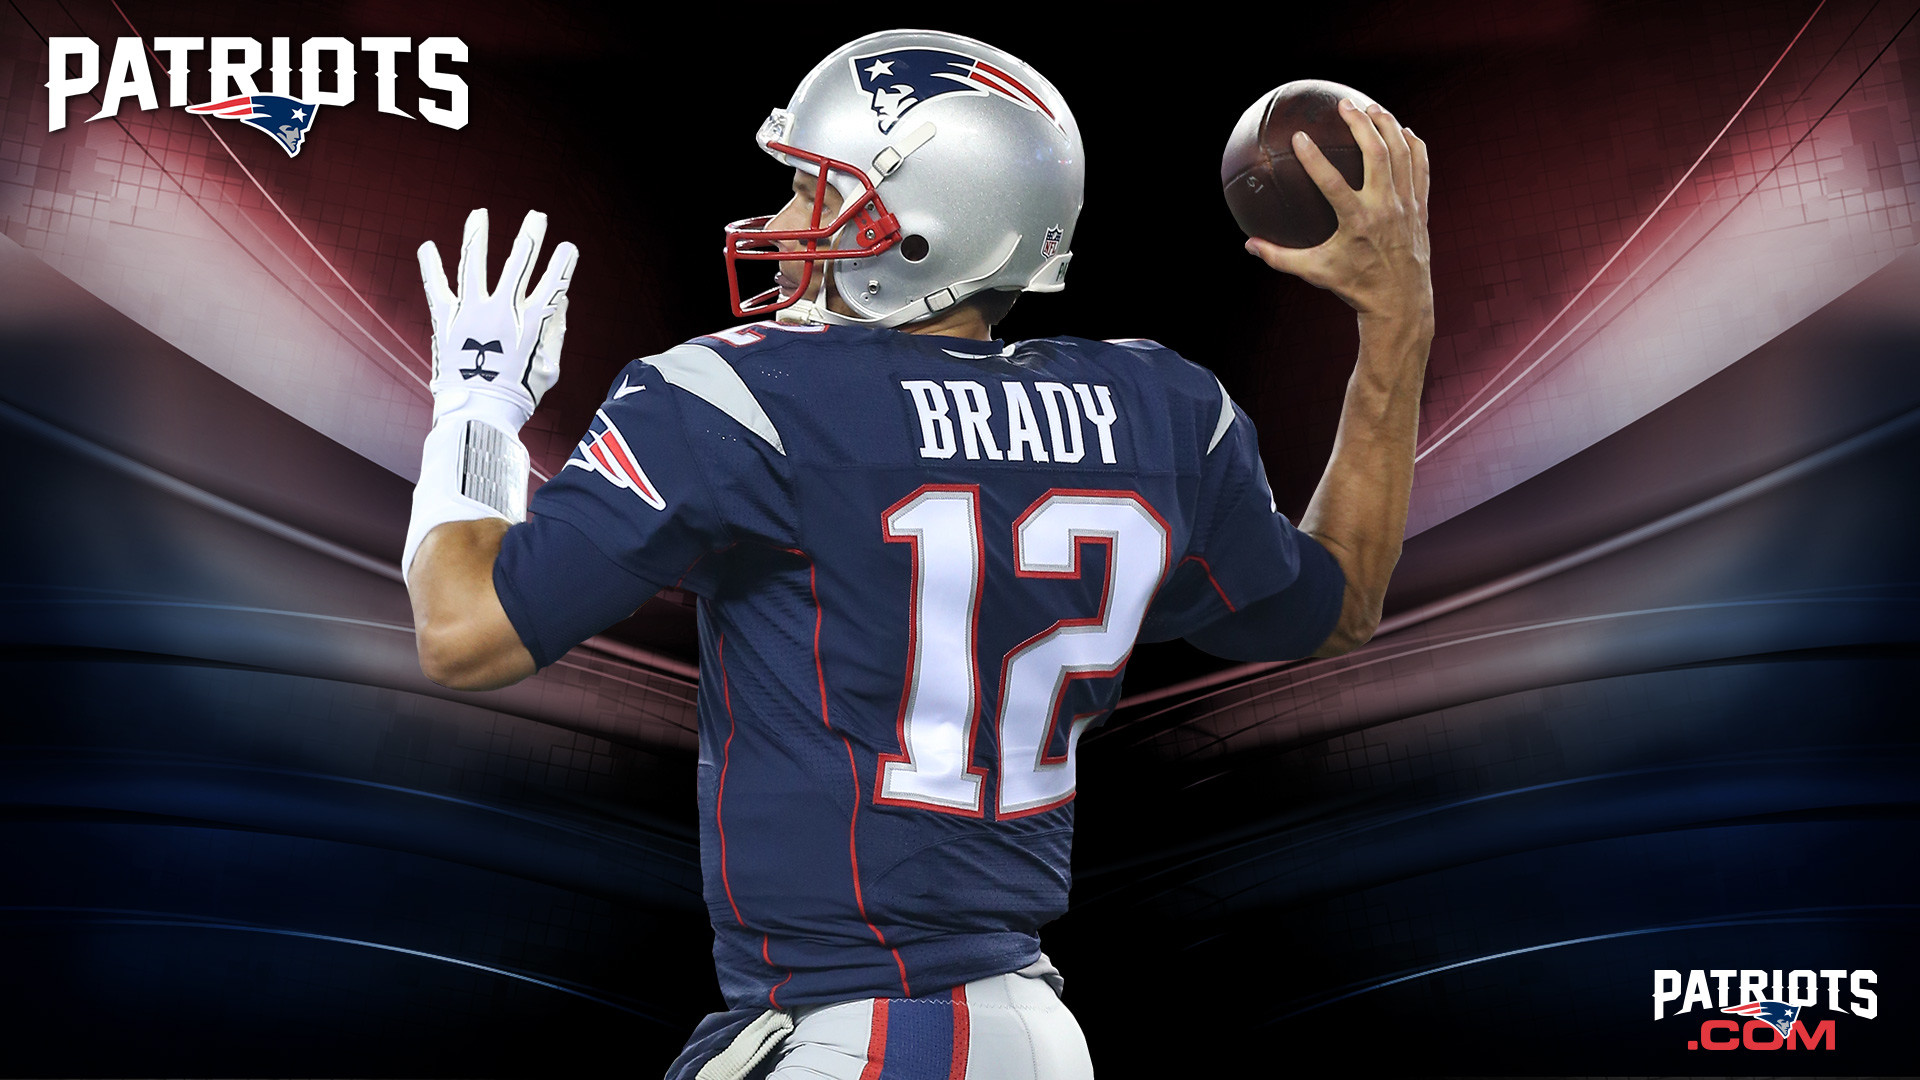 Download free wallpaper Patriots for mobile phone 640×960 Free Patriots  Wallpapers (34 Wallpapers · New England …